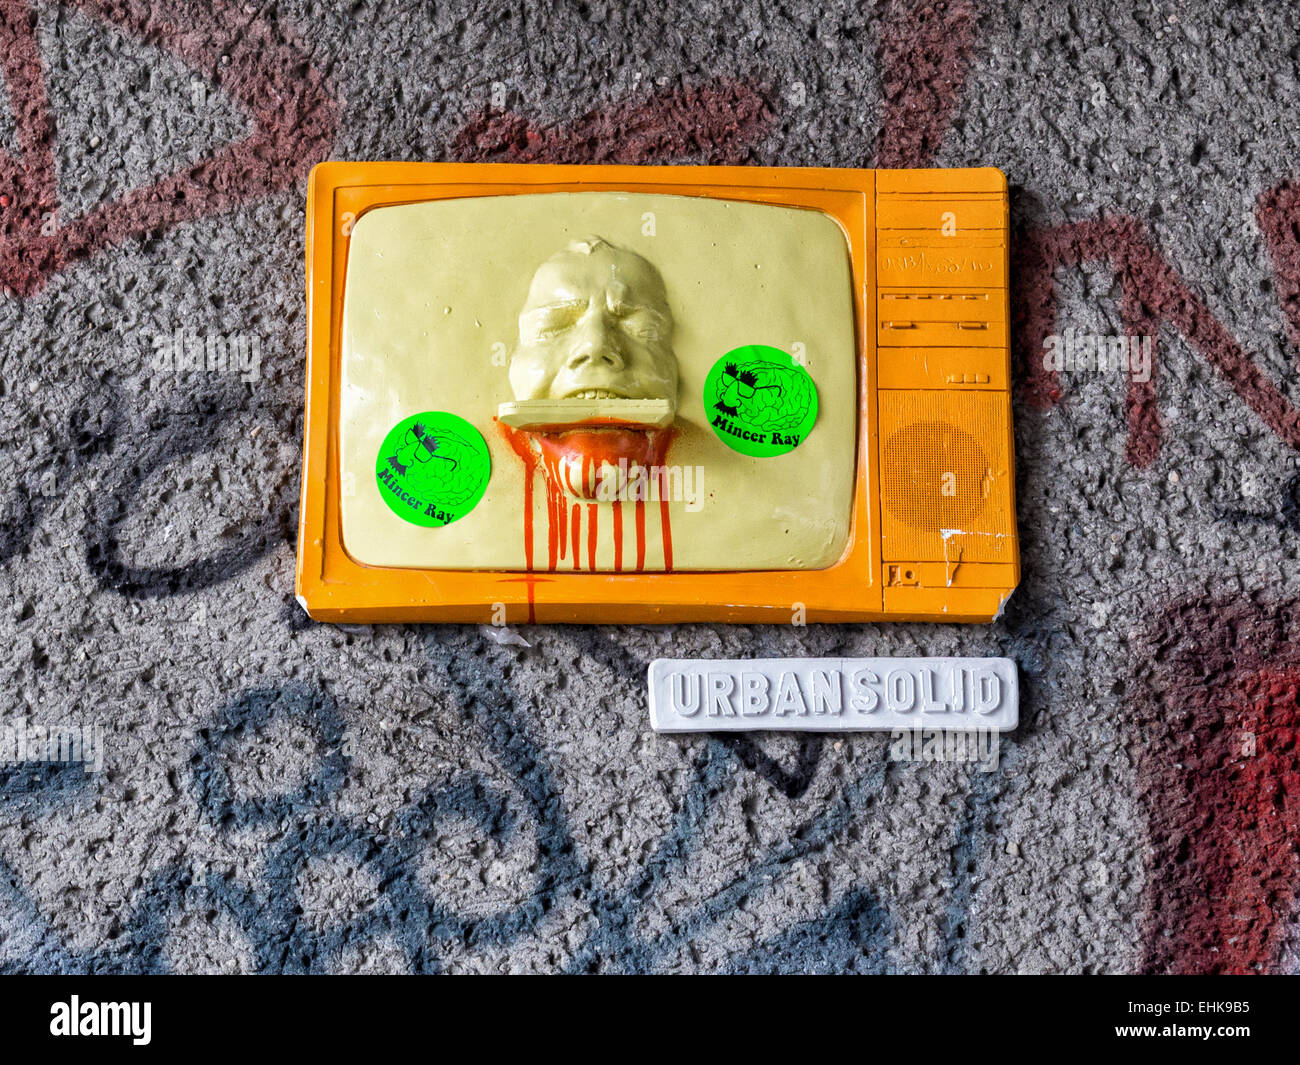 Urban Solid 3-D street art, yellow and orange television screen with protruding head, Mitte, Berlin - Stock Image